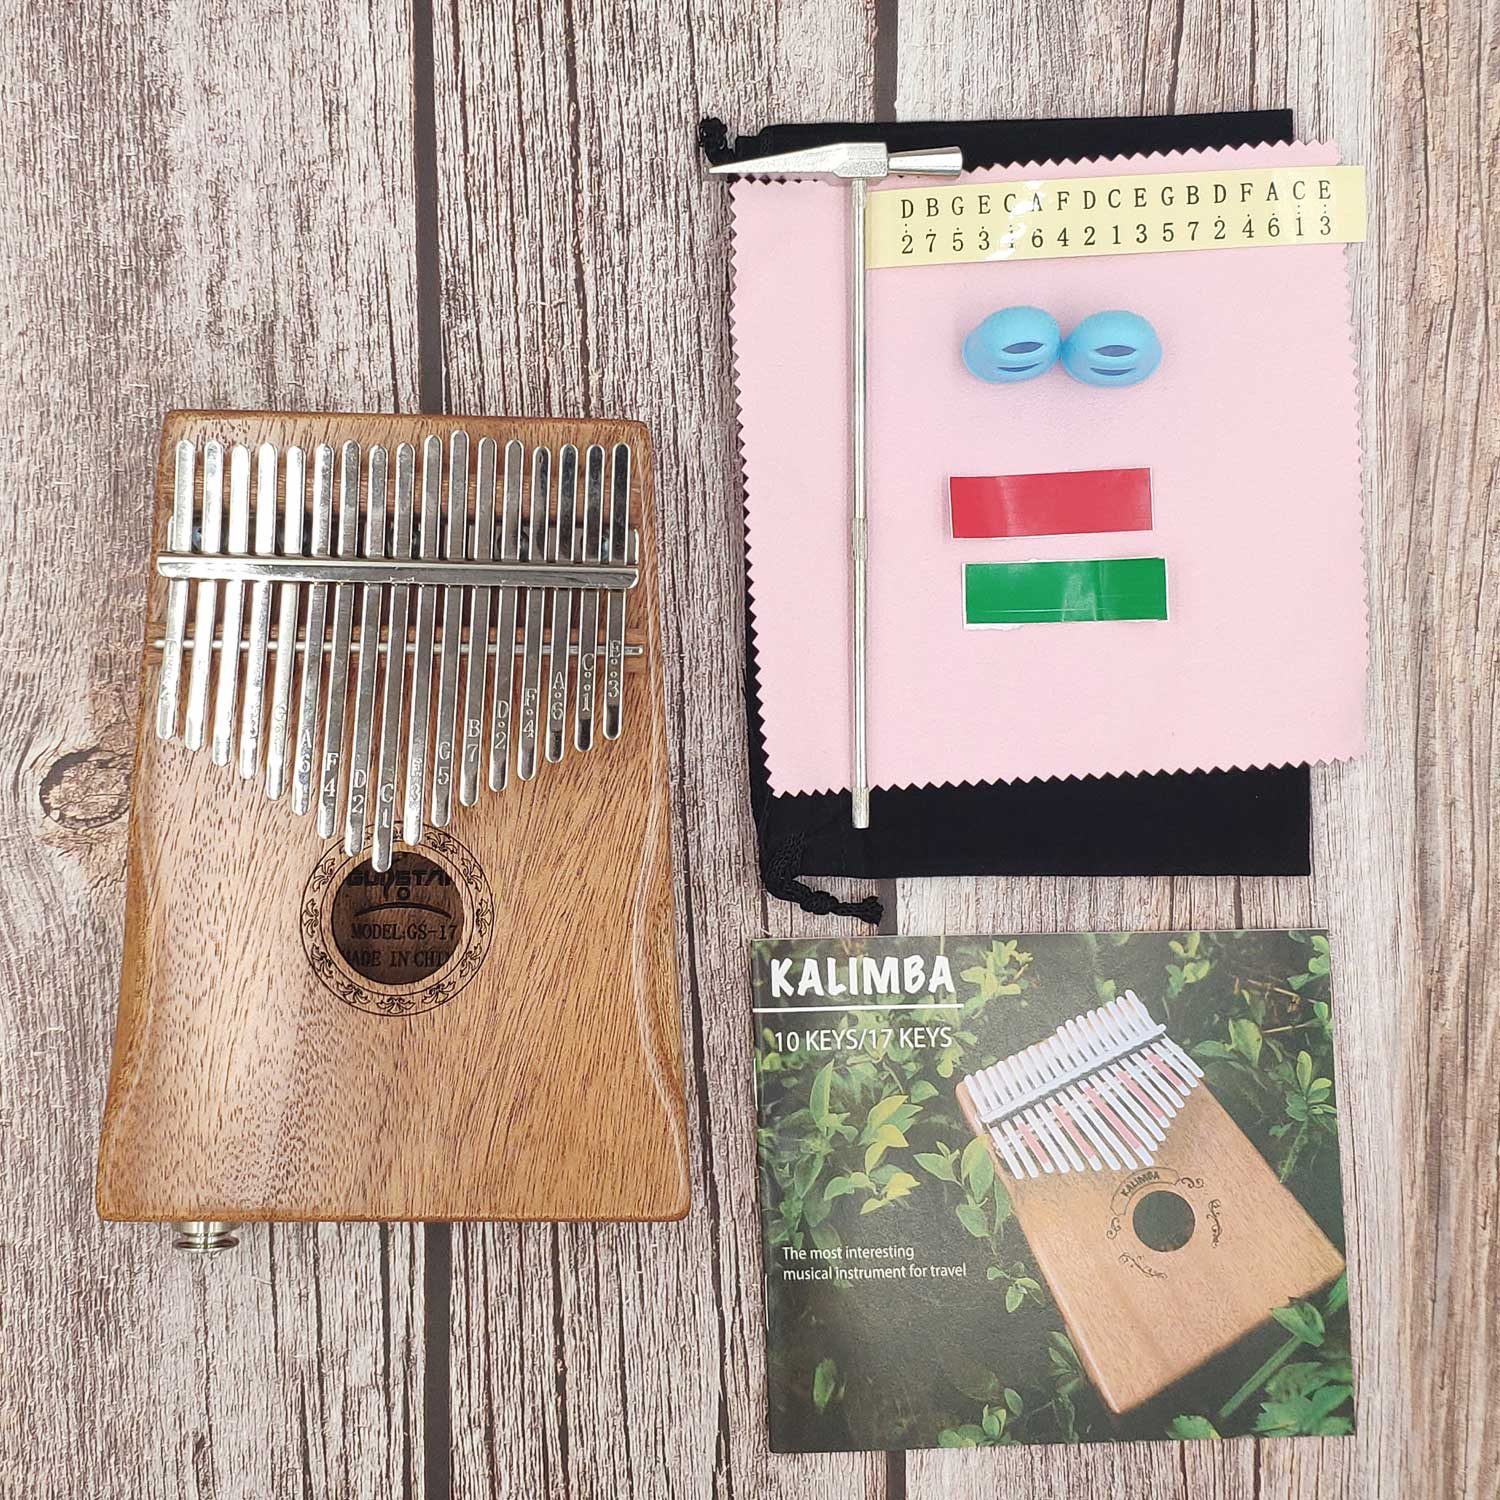 -key Kalimba African Festival Jaws Mahagoni Thumbs Finger Piano Sanza Mbira Calimba Games With Guitar Wood Musical Instruments